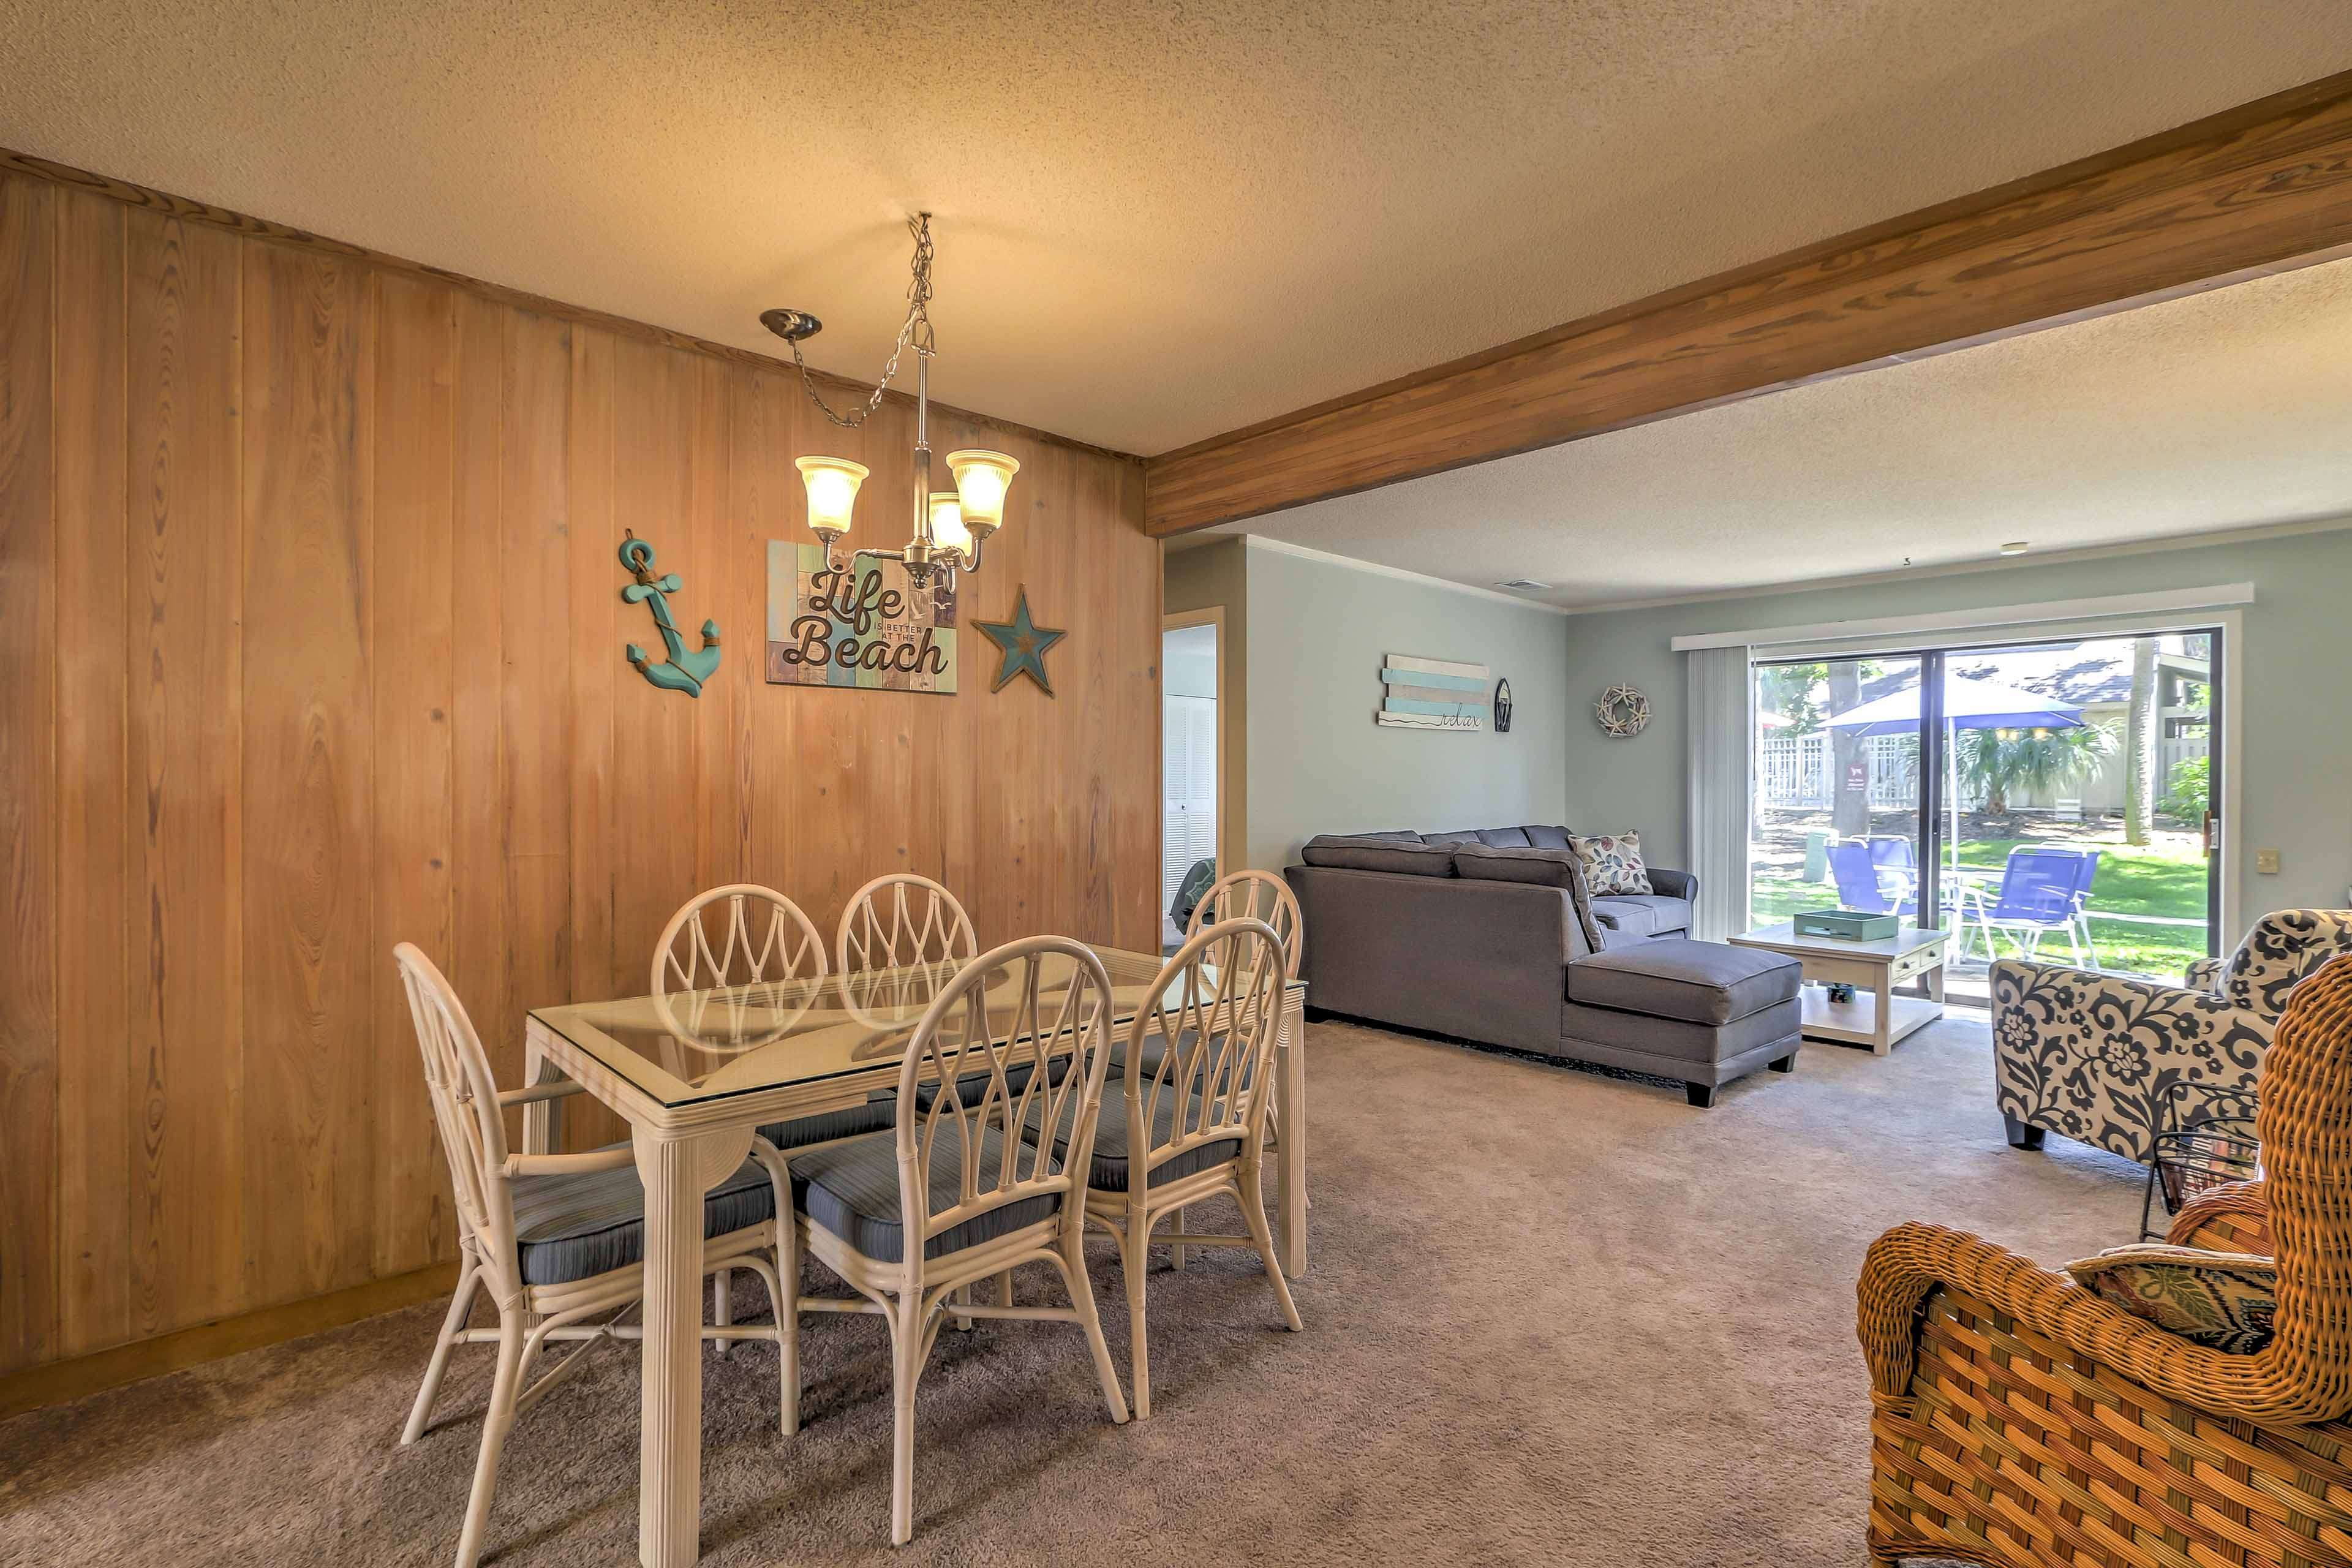 The condo has an open layout from the living room to the kitchen and dining area